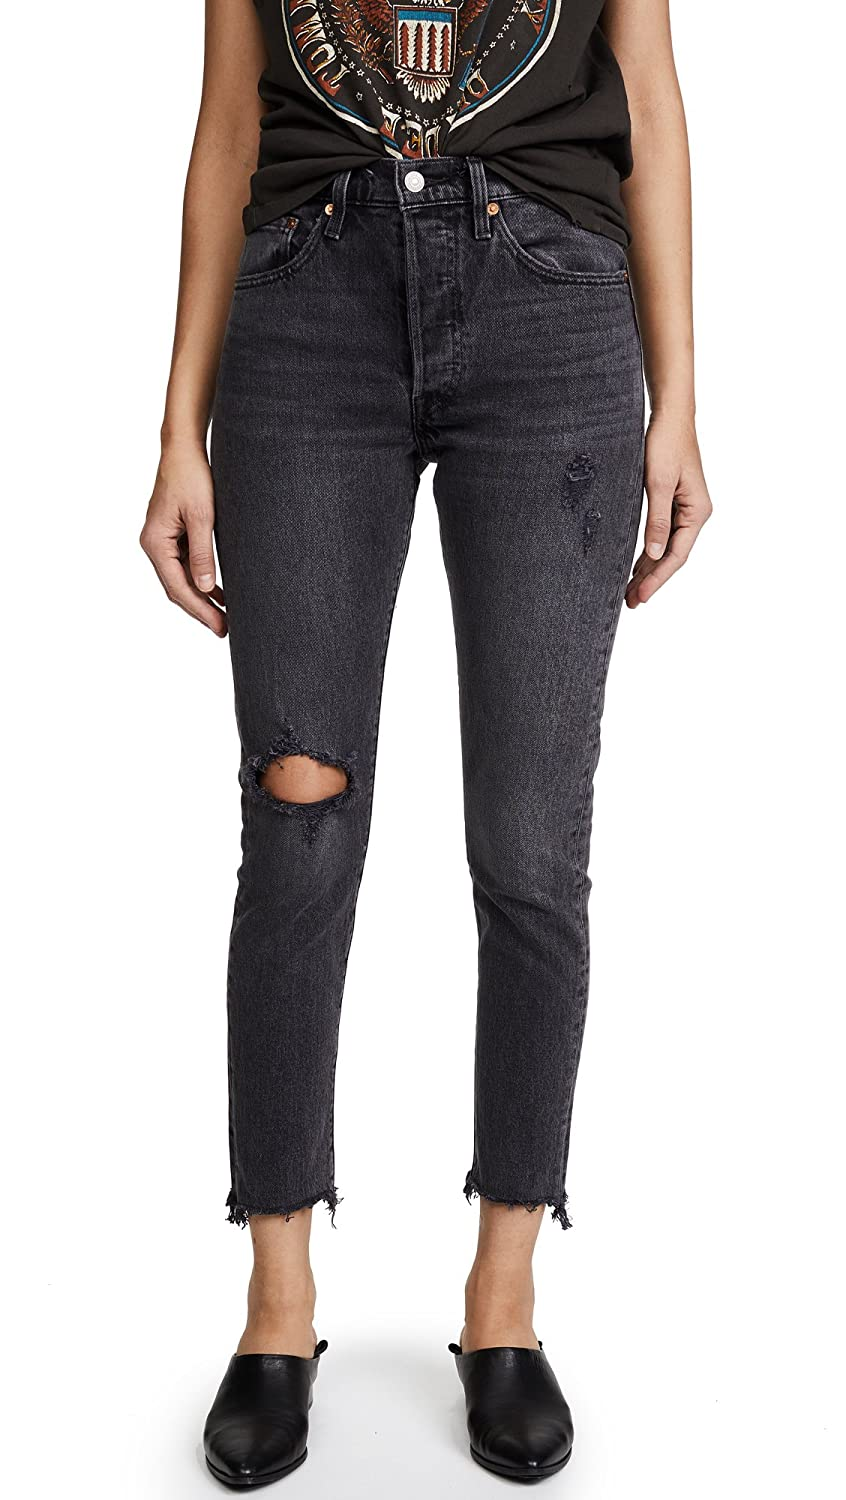 Levi's Women's 501 Stretch Skinny Jeans by Levi27s